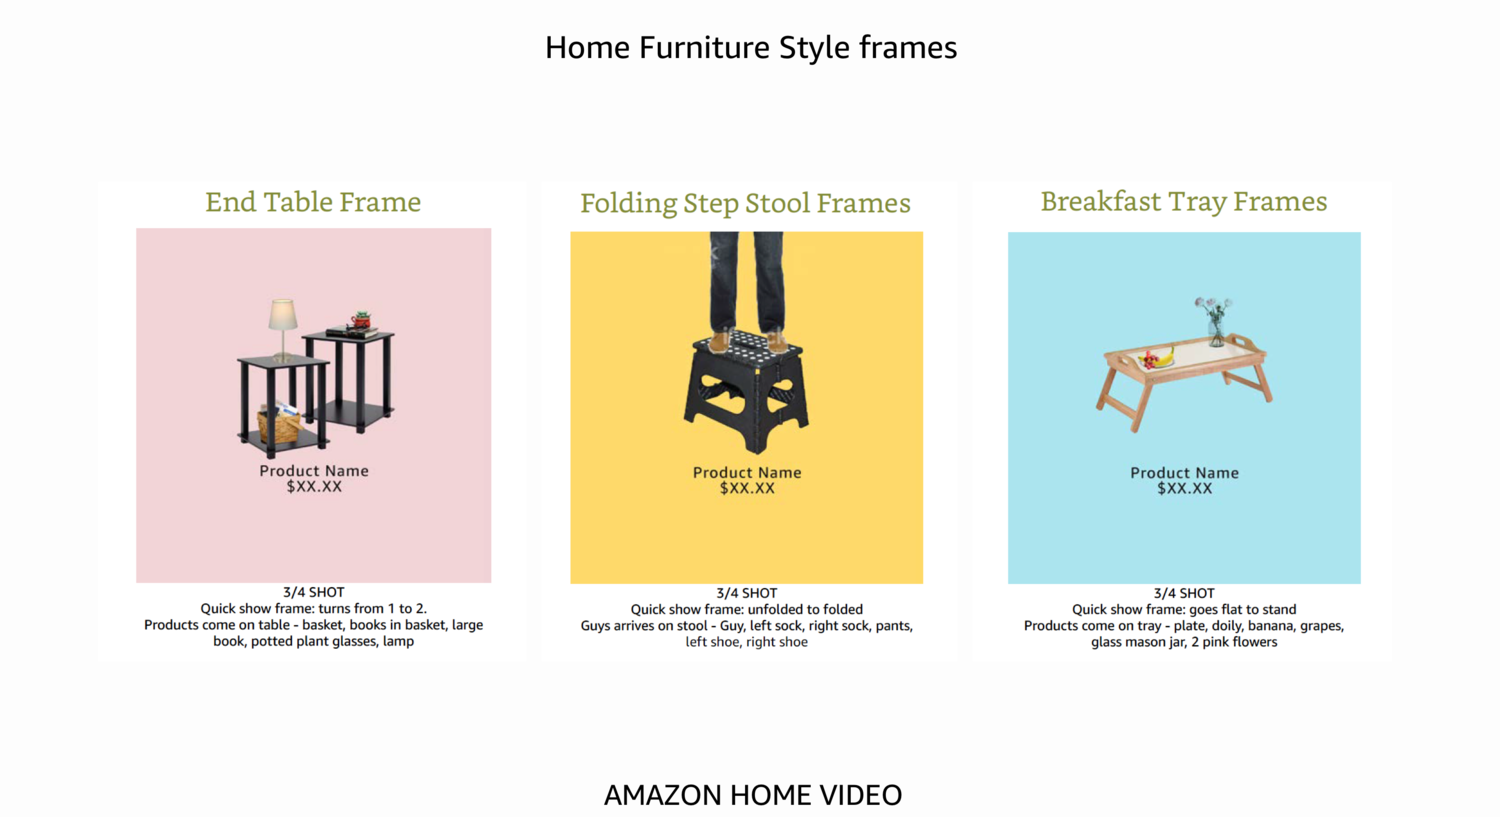 Amazon Furniture Stop-Motion YouTube Ad Style Frames    Art Direction   August 2017